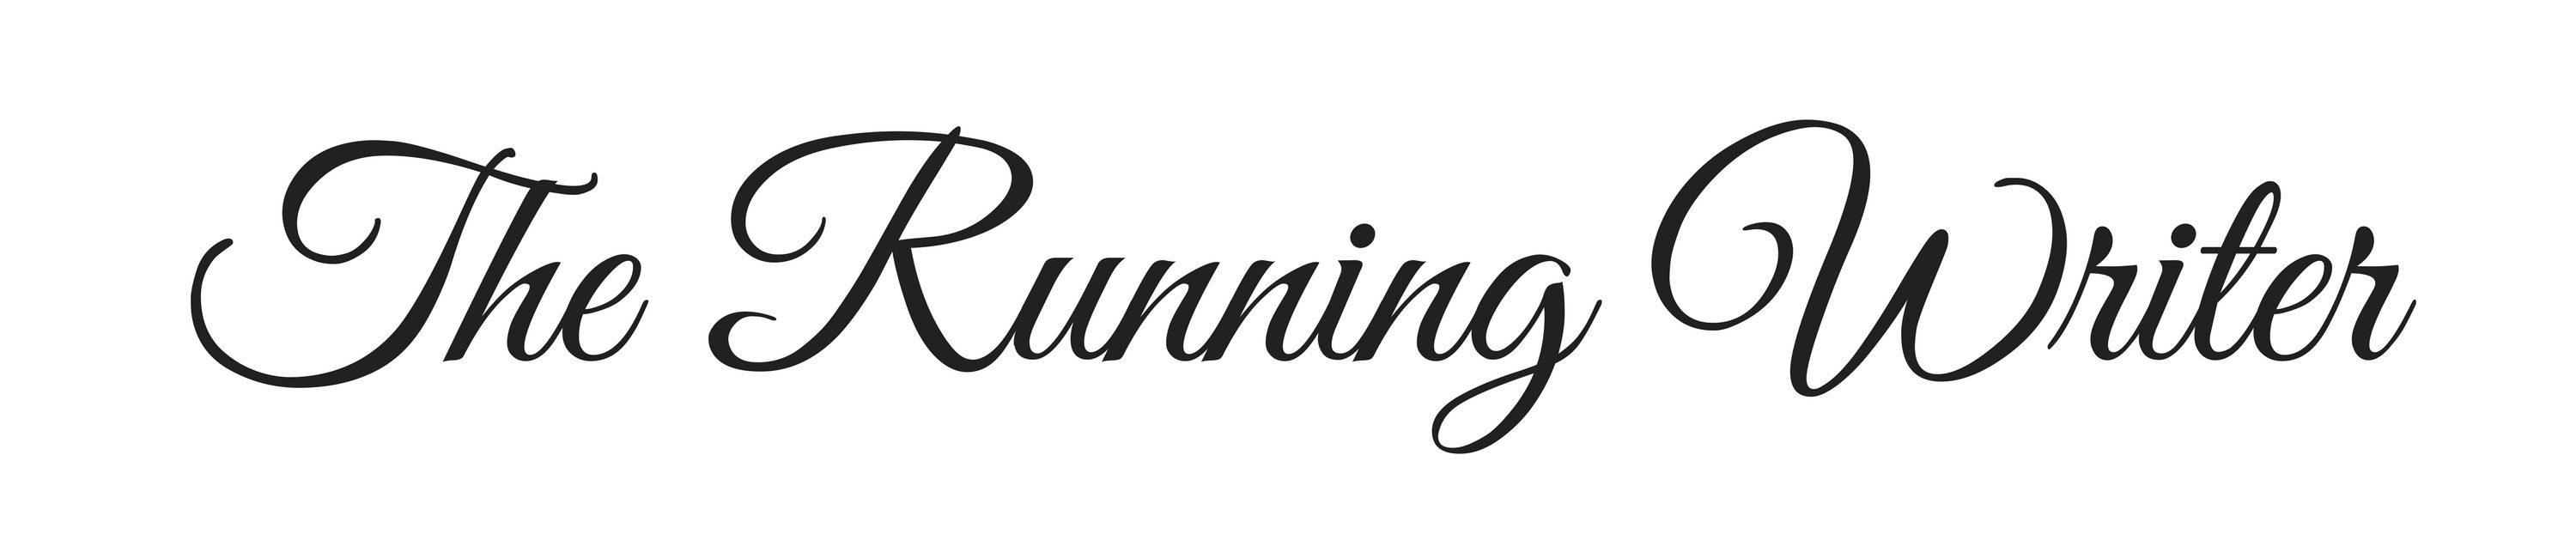 The Running Writer